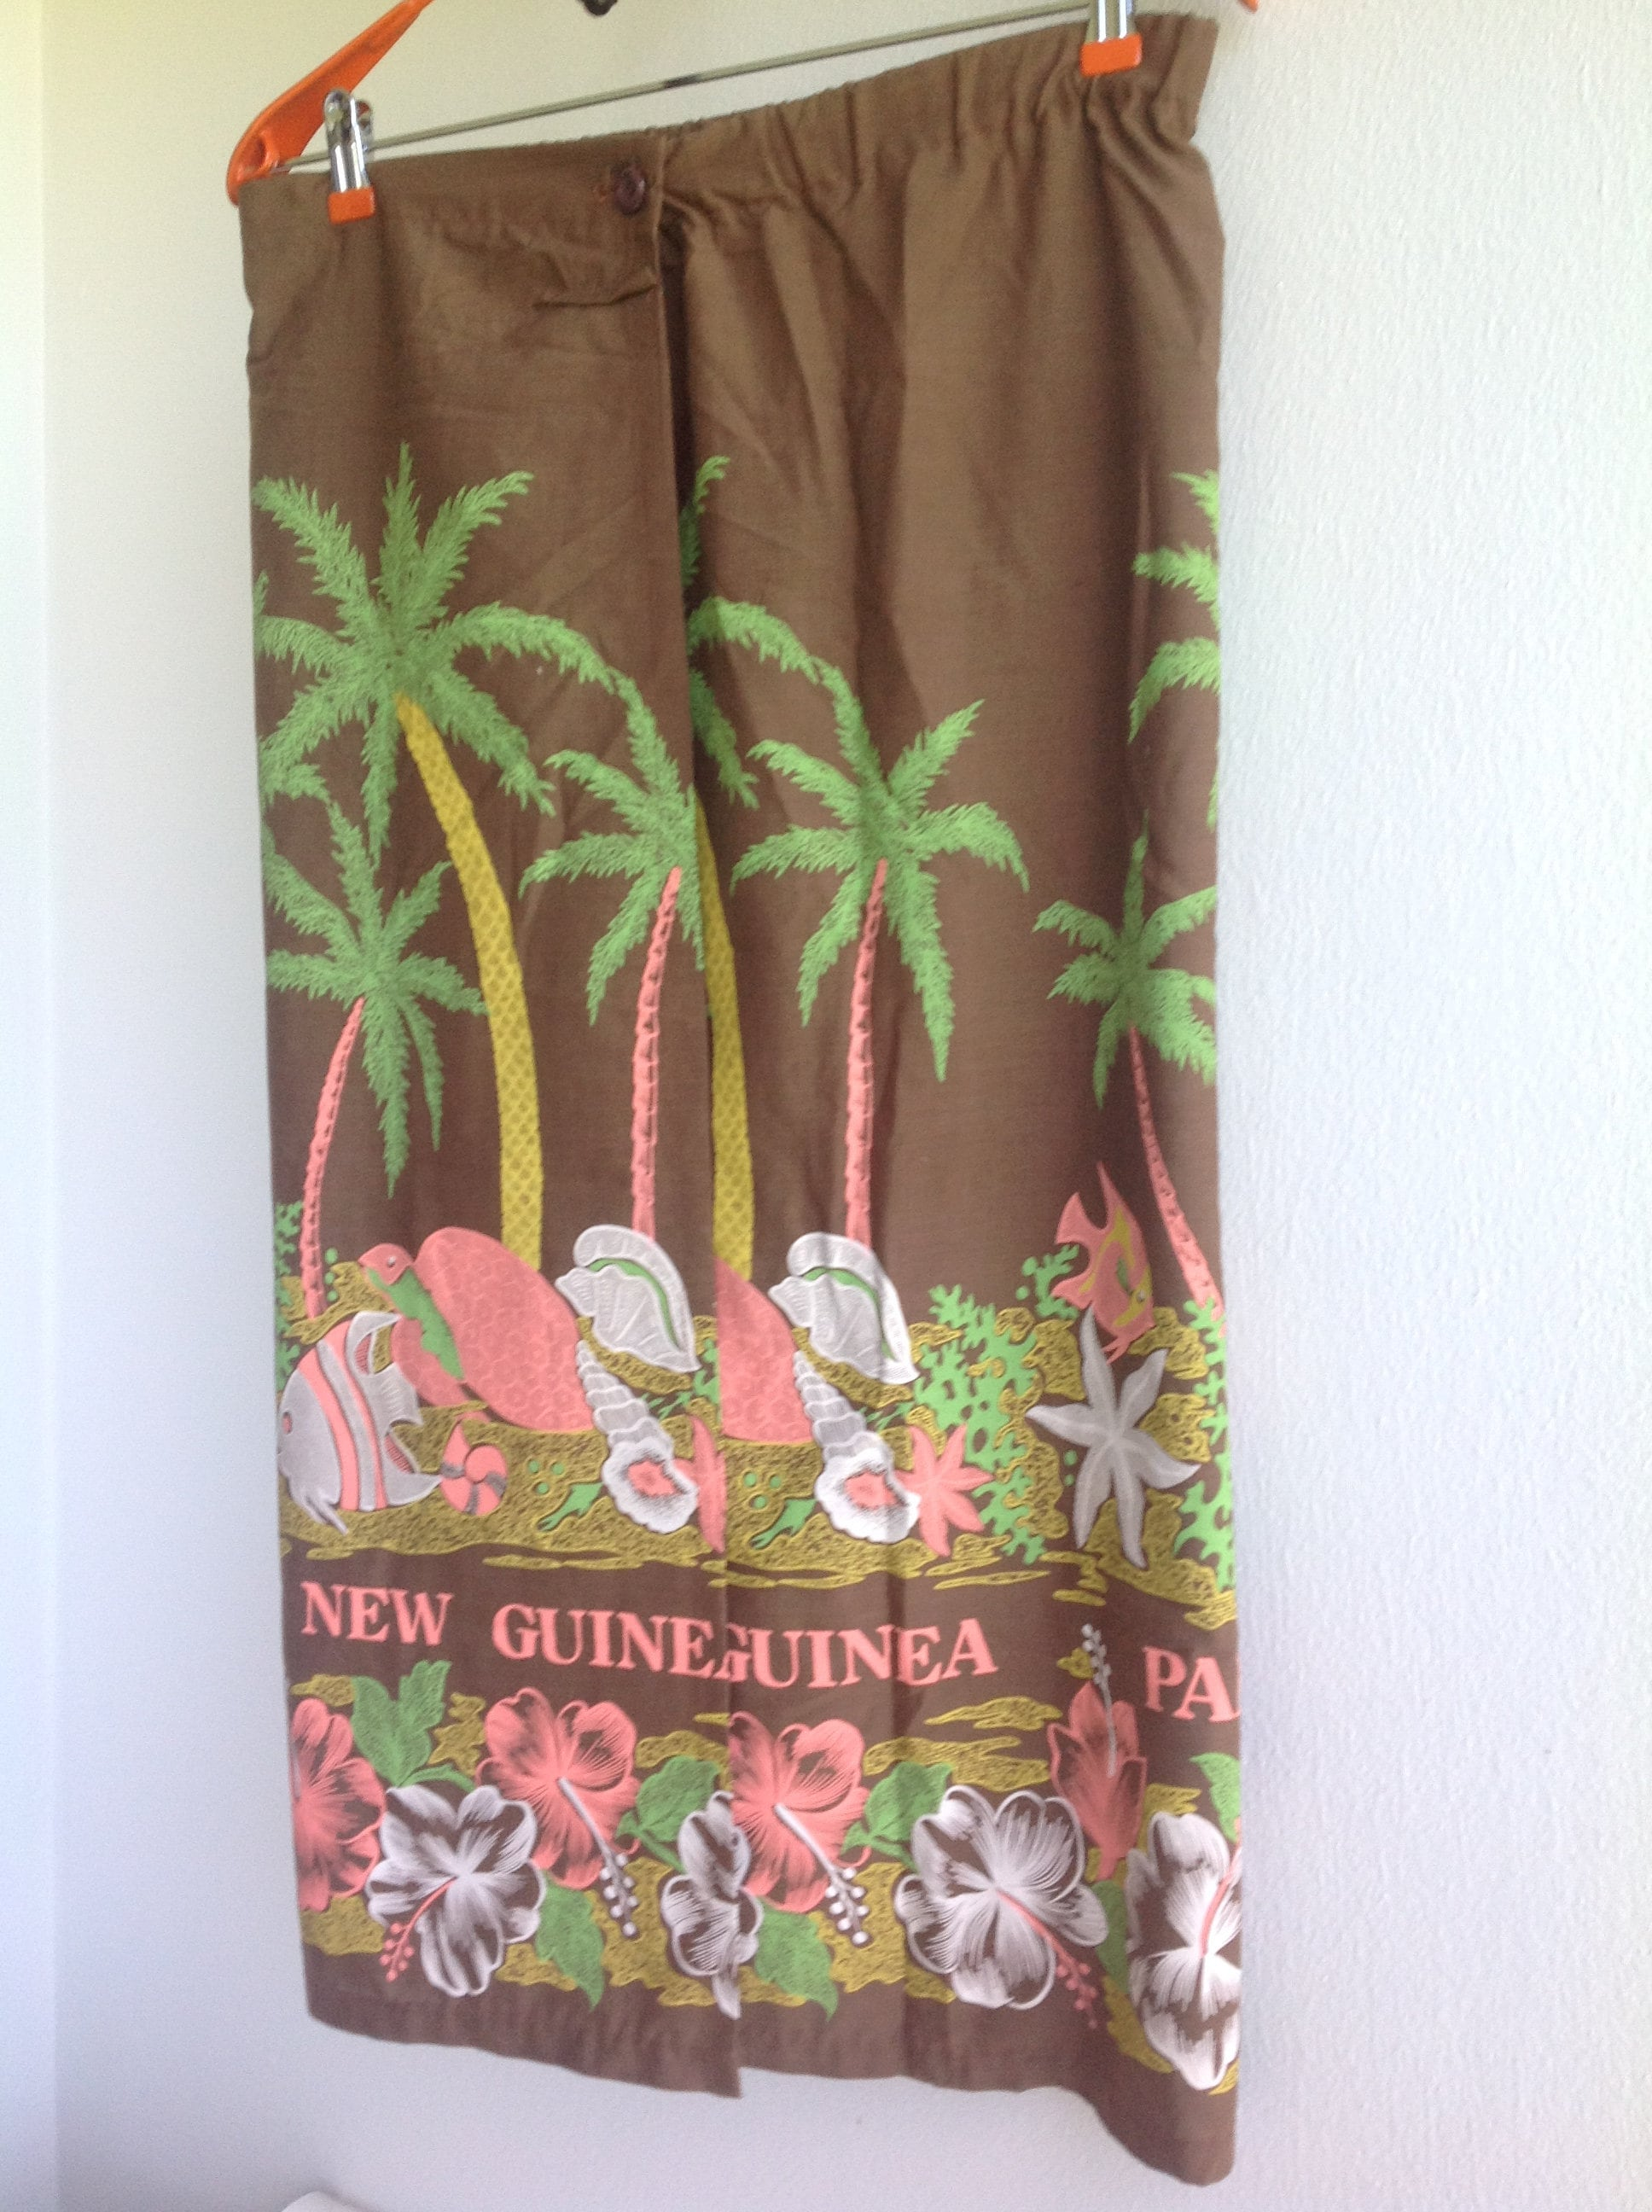 Long wrap skirt or swim suit cover up. Beach. Summer. Papua New Guinea print. Free Priority shipping in the US.